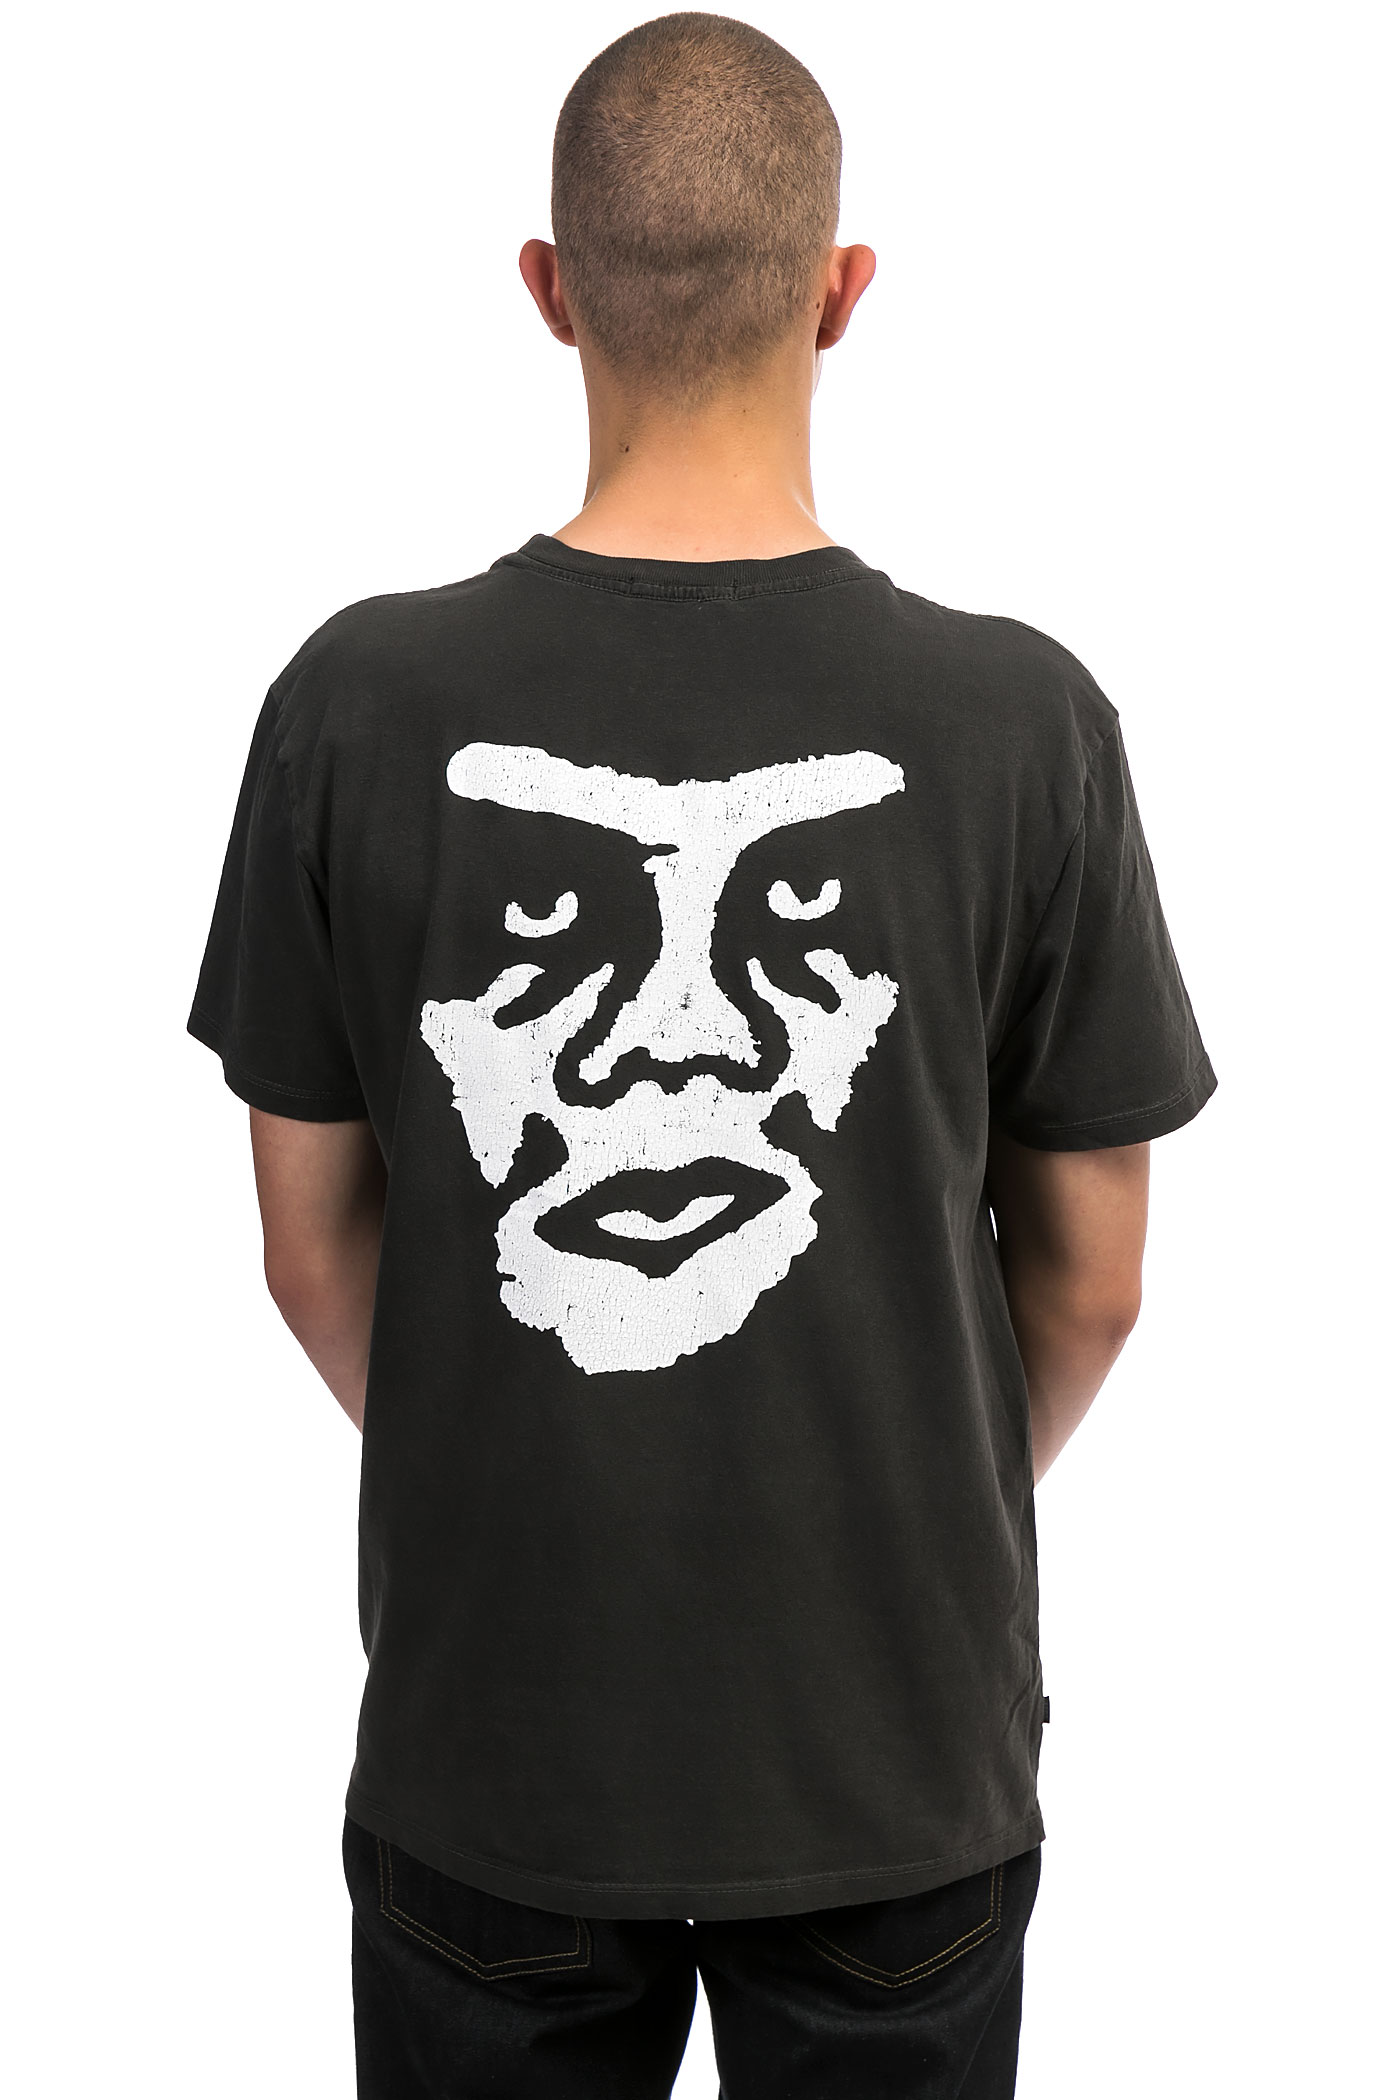 Obey the creeper t shirt dusty black kaufen bei skatedeluxe for Black obey t shirt